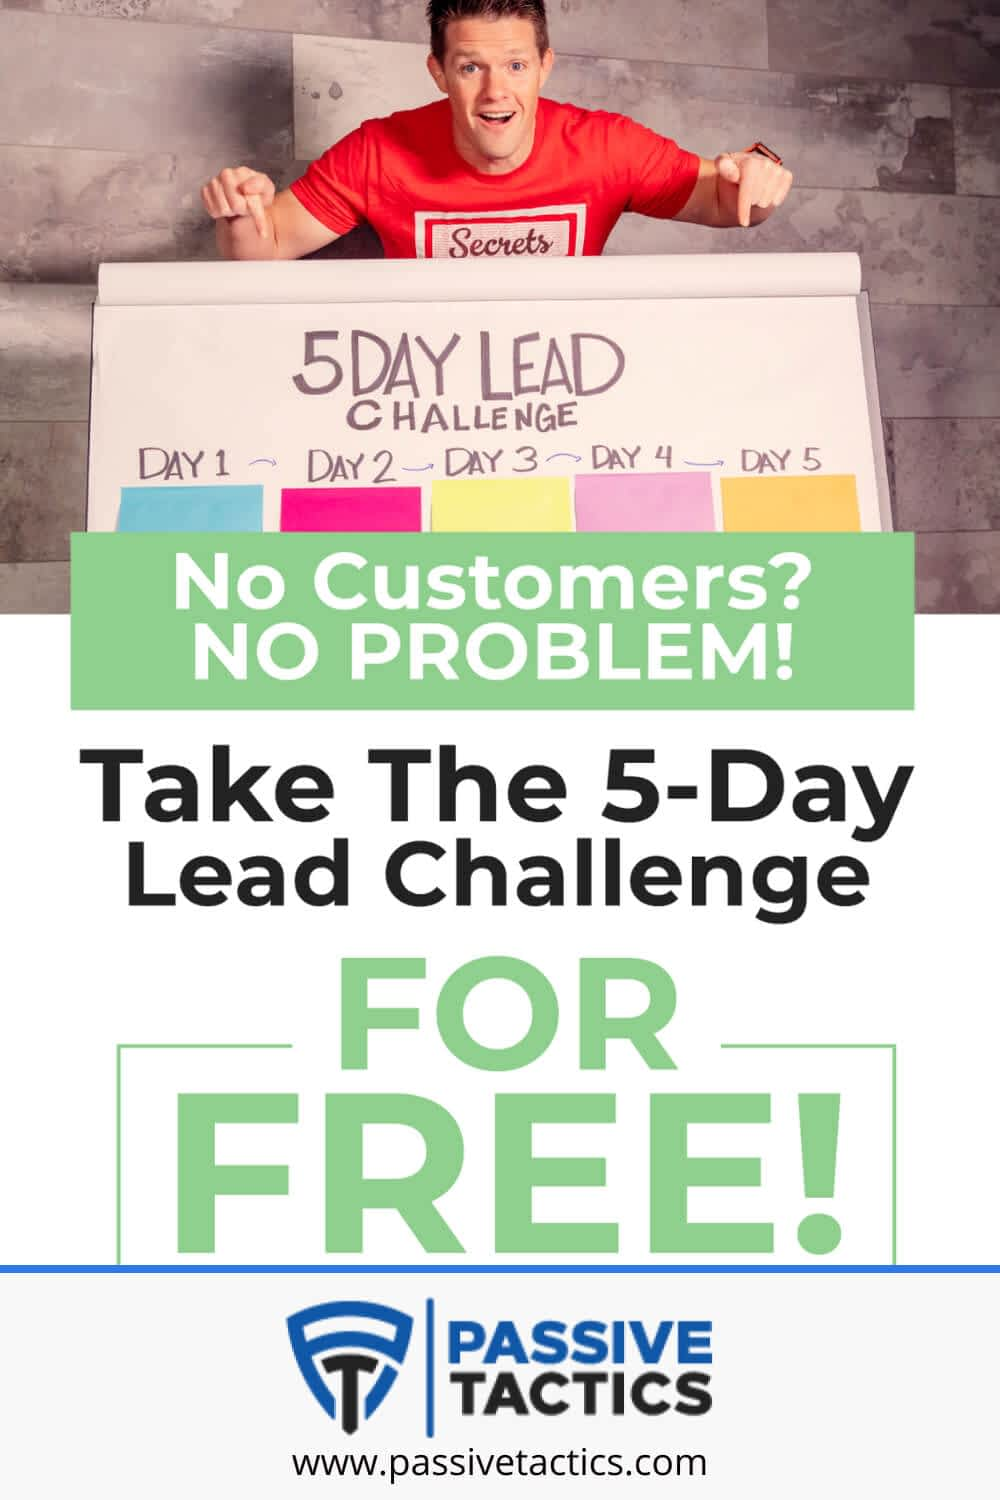 5-Day Lead Challenge By Russell Brunson (Review)